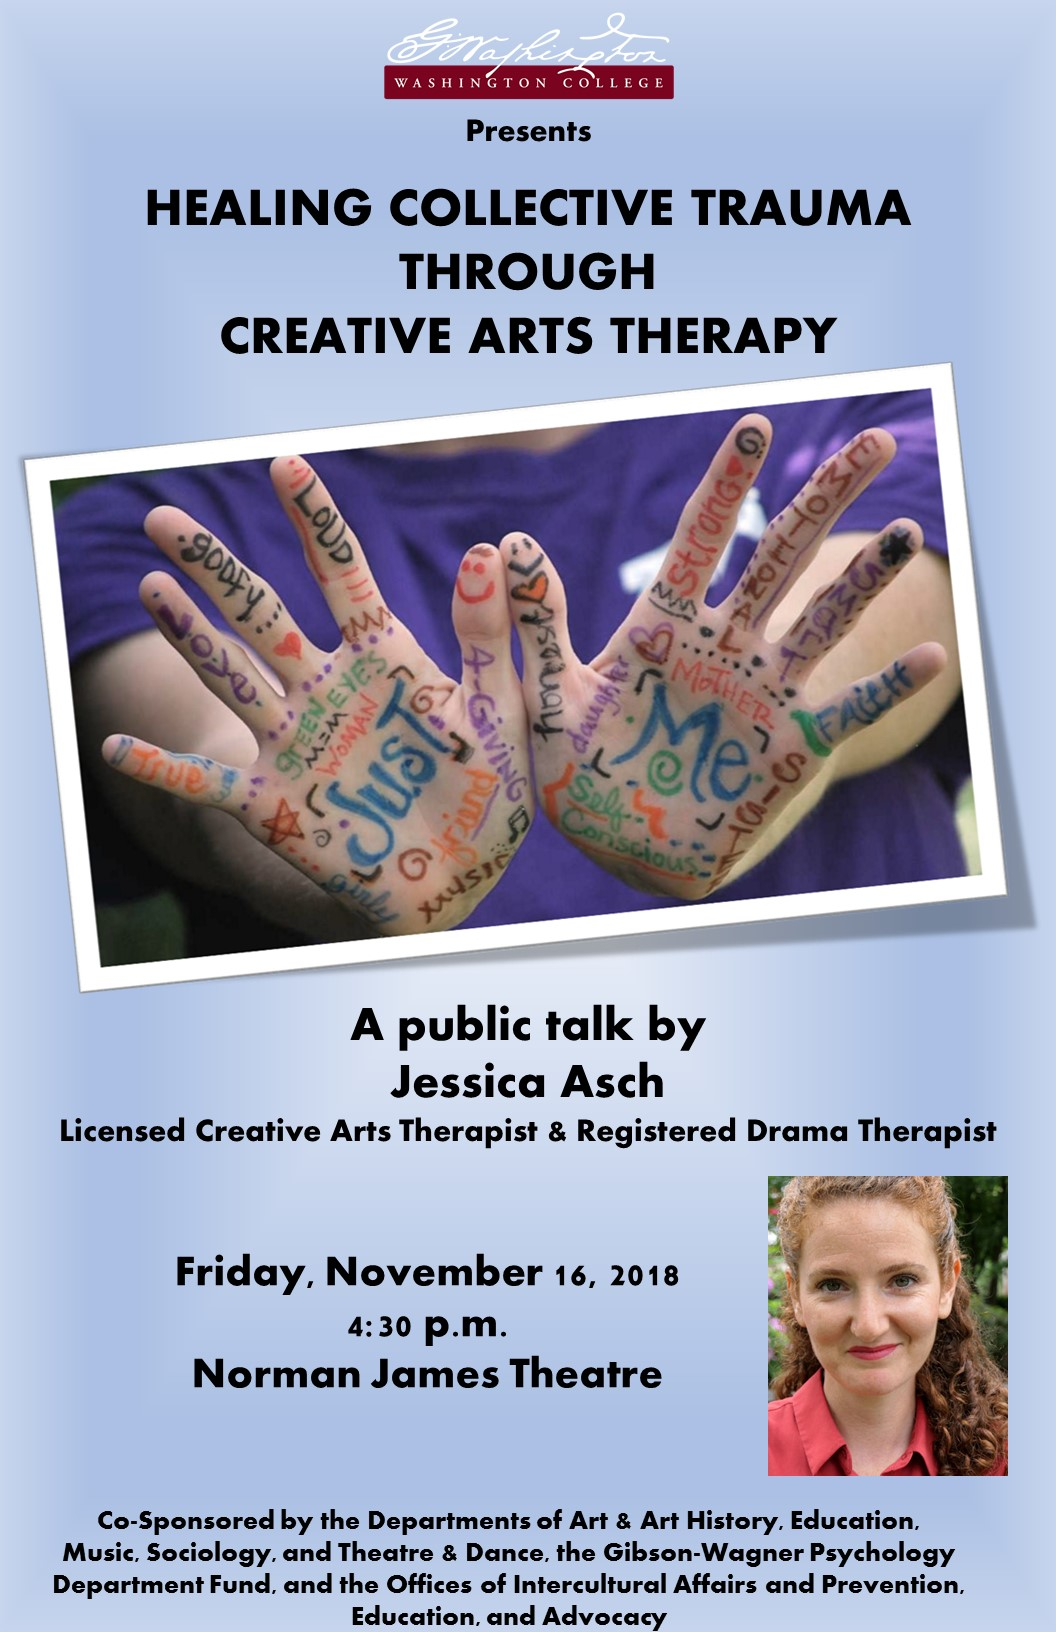 Healing Collective Trauma Through Creative Arts Therapy: A Talk by Jessica Asch